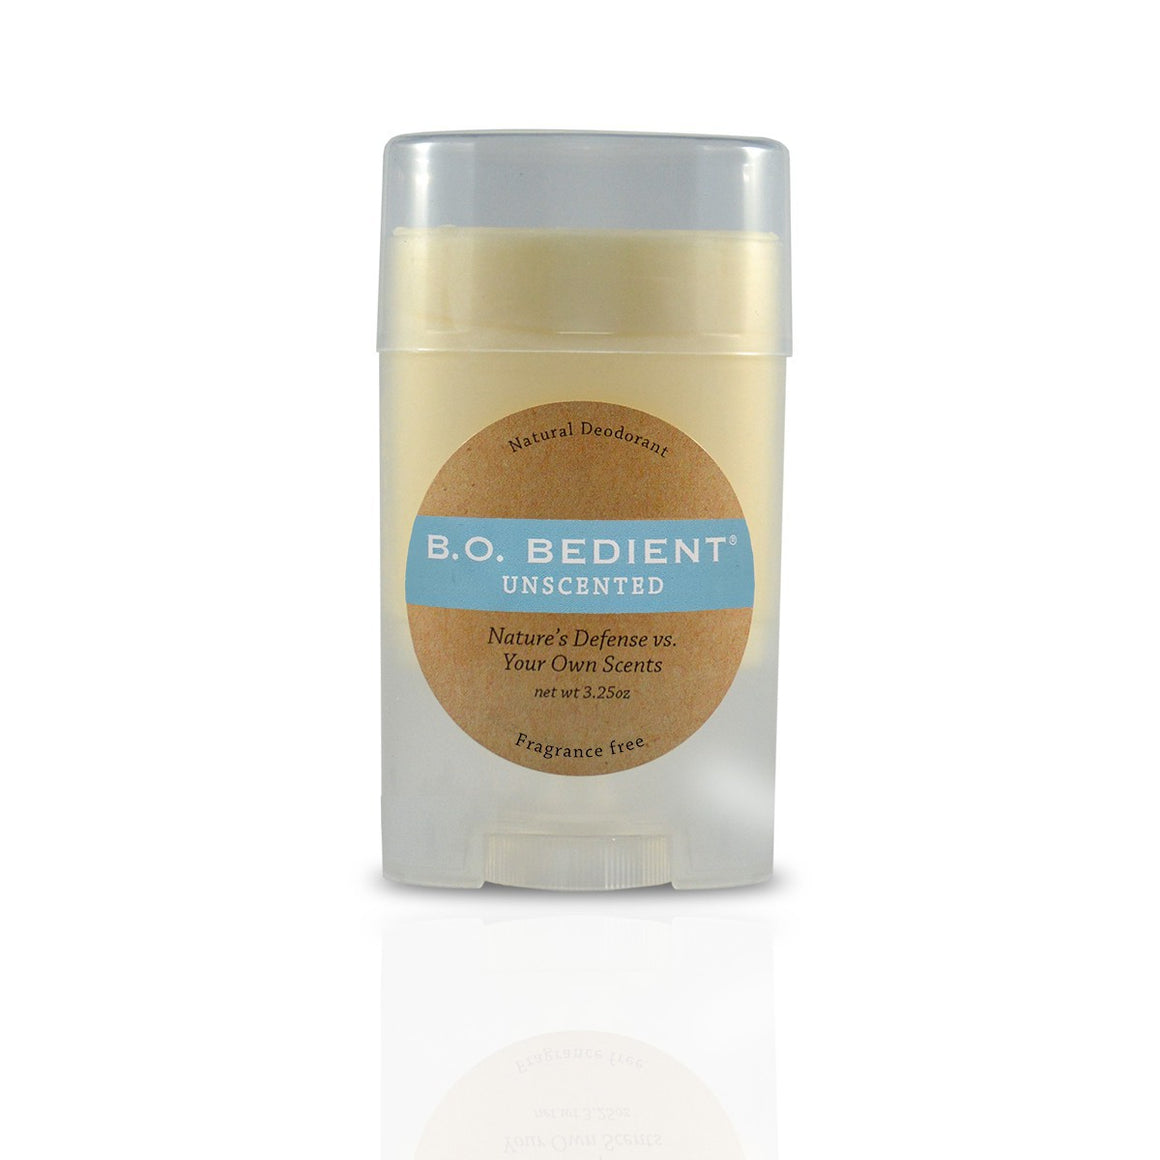 All Natural Deodorant - Unscented Stick